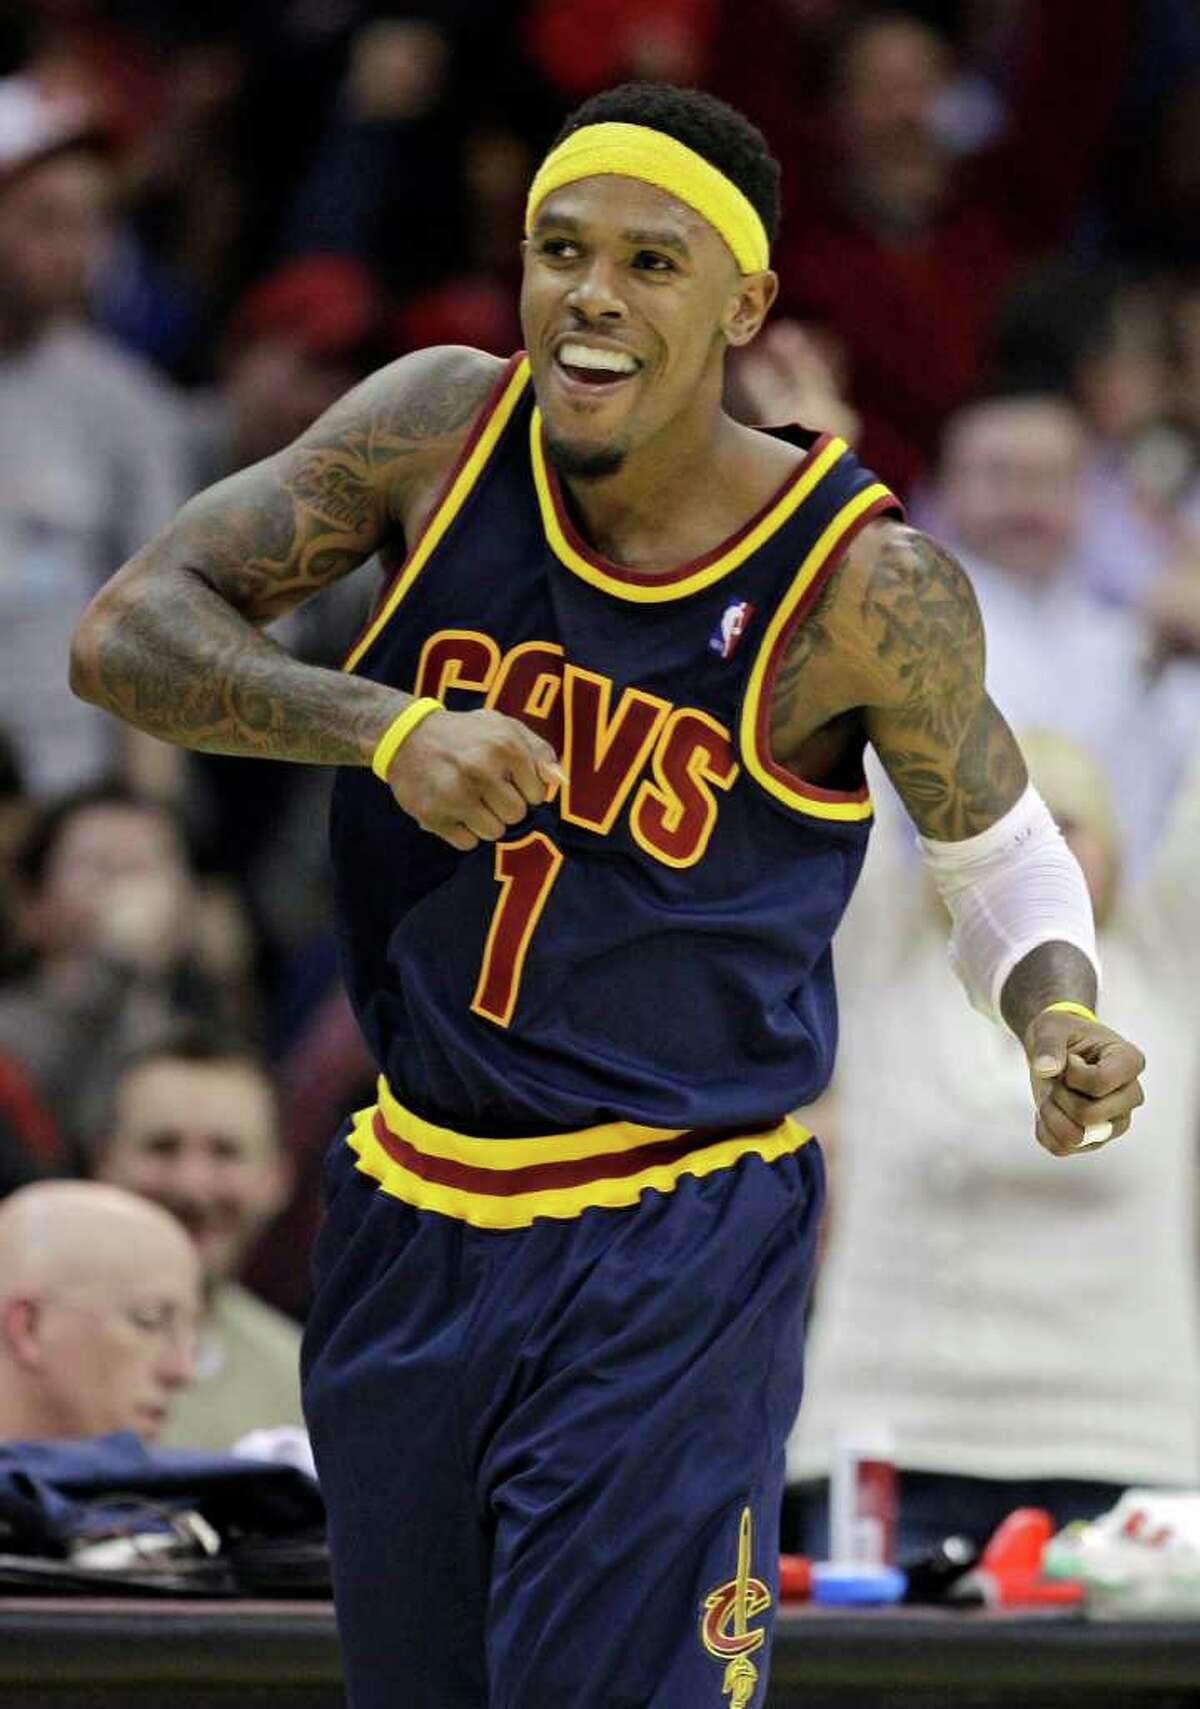 Cavs guard Daniel Gibson also could have been a part of a Texas team full of future NBA players in 2006-07.